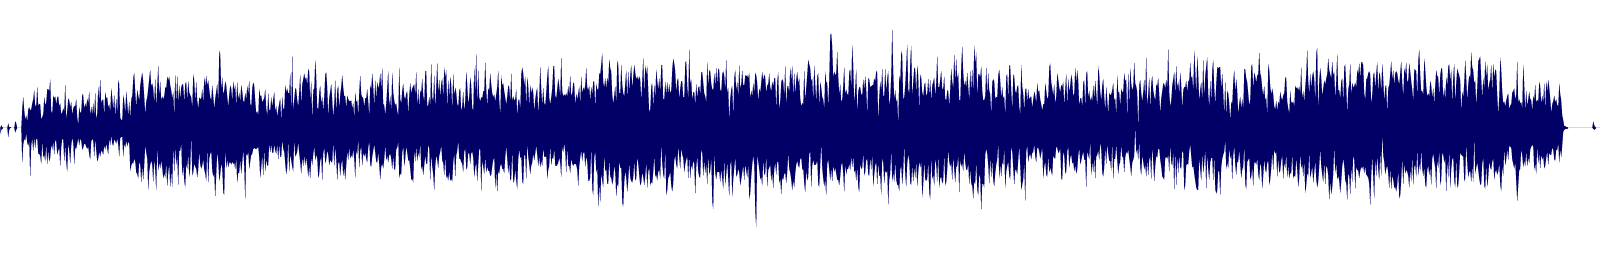 waveform of track #159810